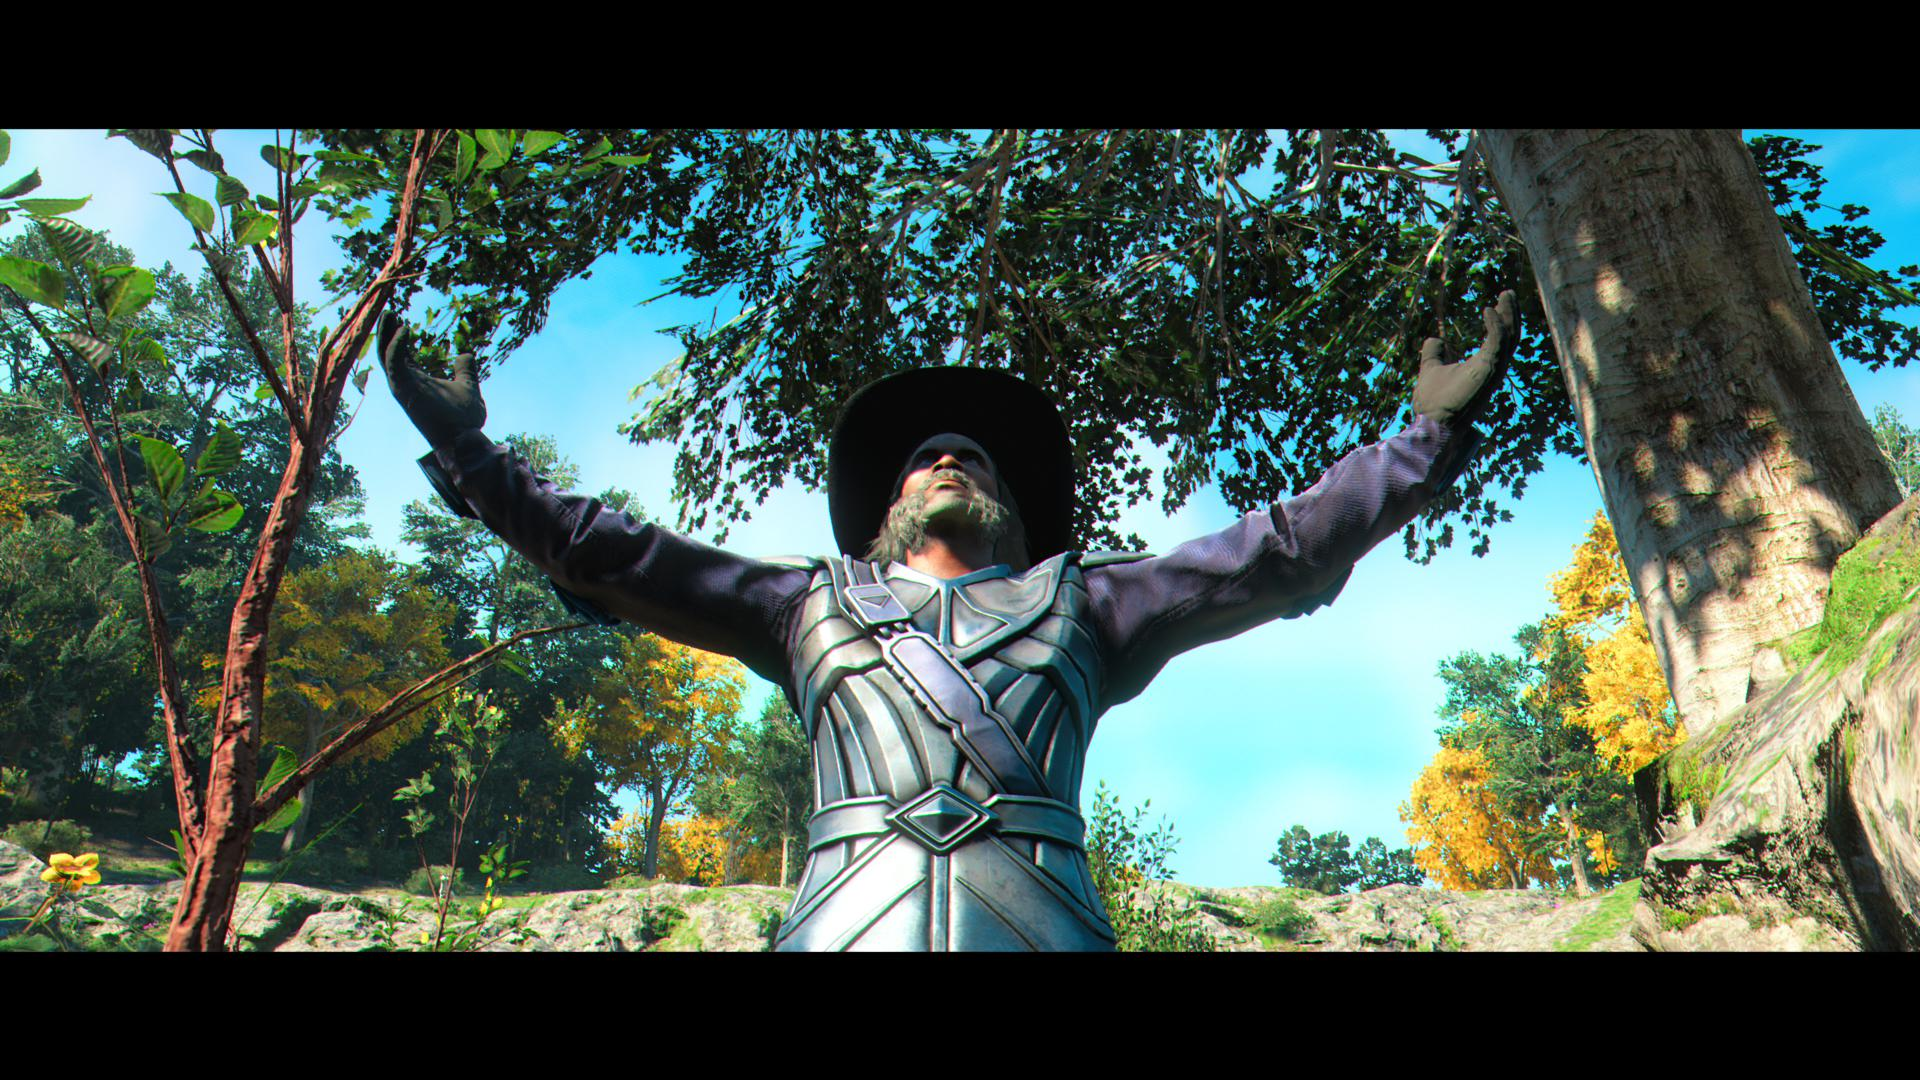 The player wearing a leather jacket and a fetching hat with their arms raised as though appealing to heaven.